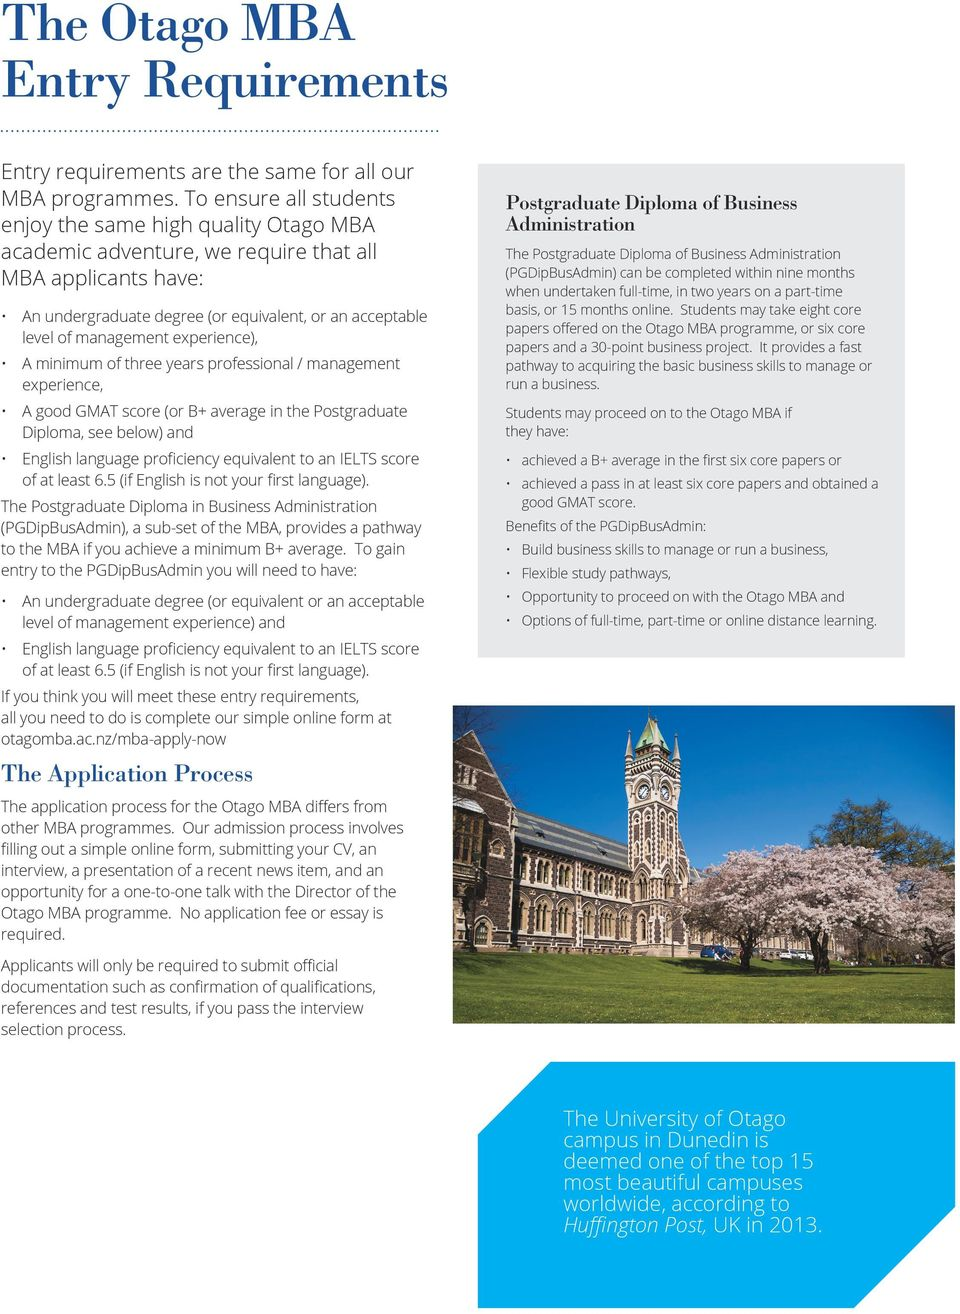 experience), A minimum of three years professional / management experience, A good GMAT score (or B+ average in the Postgraduate Diploma, see below) and English language proficiency equivalent to an